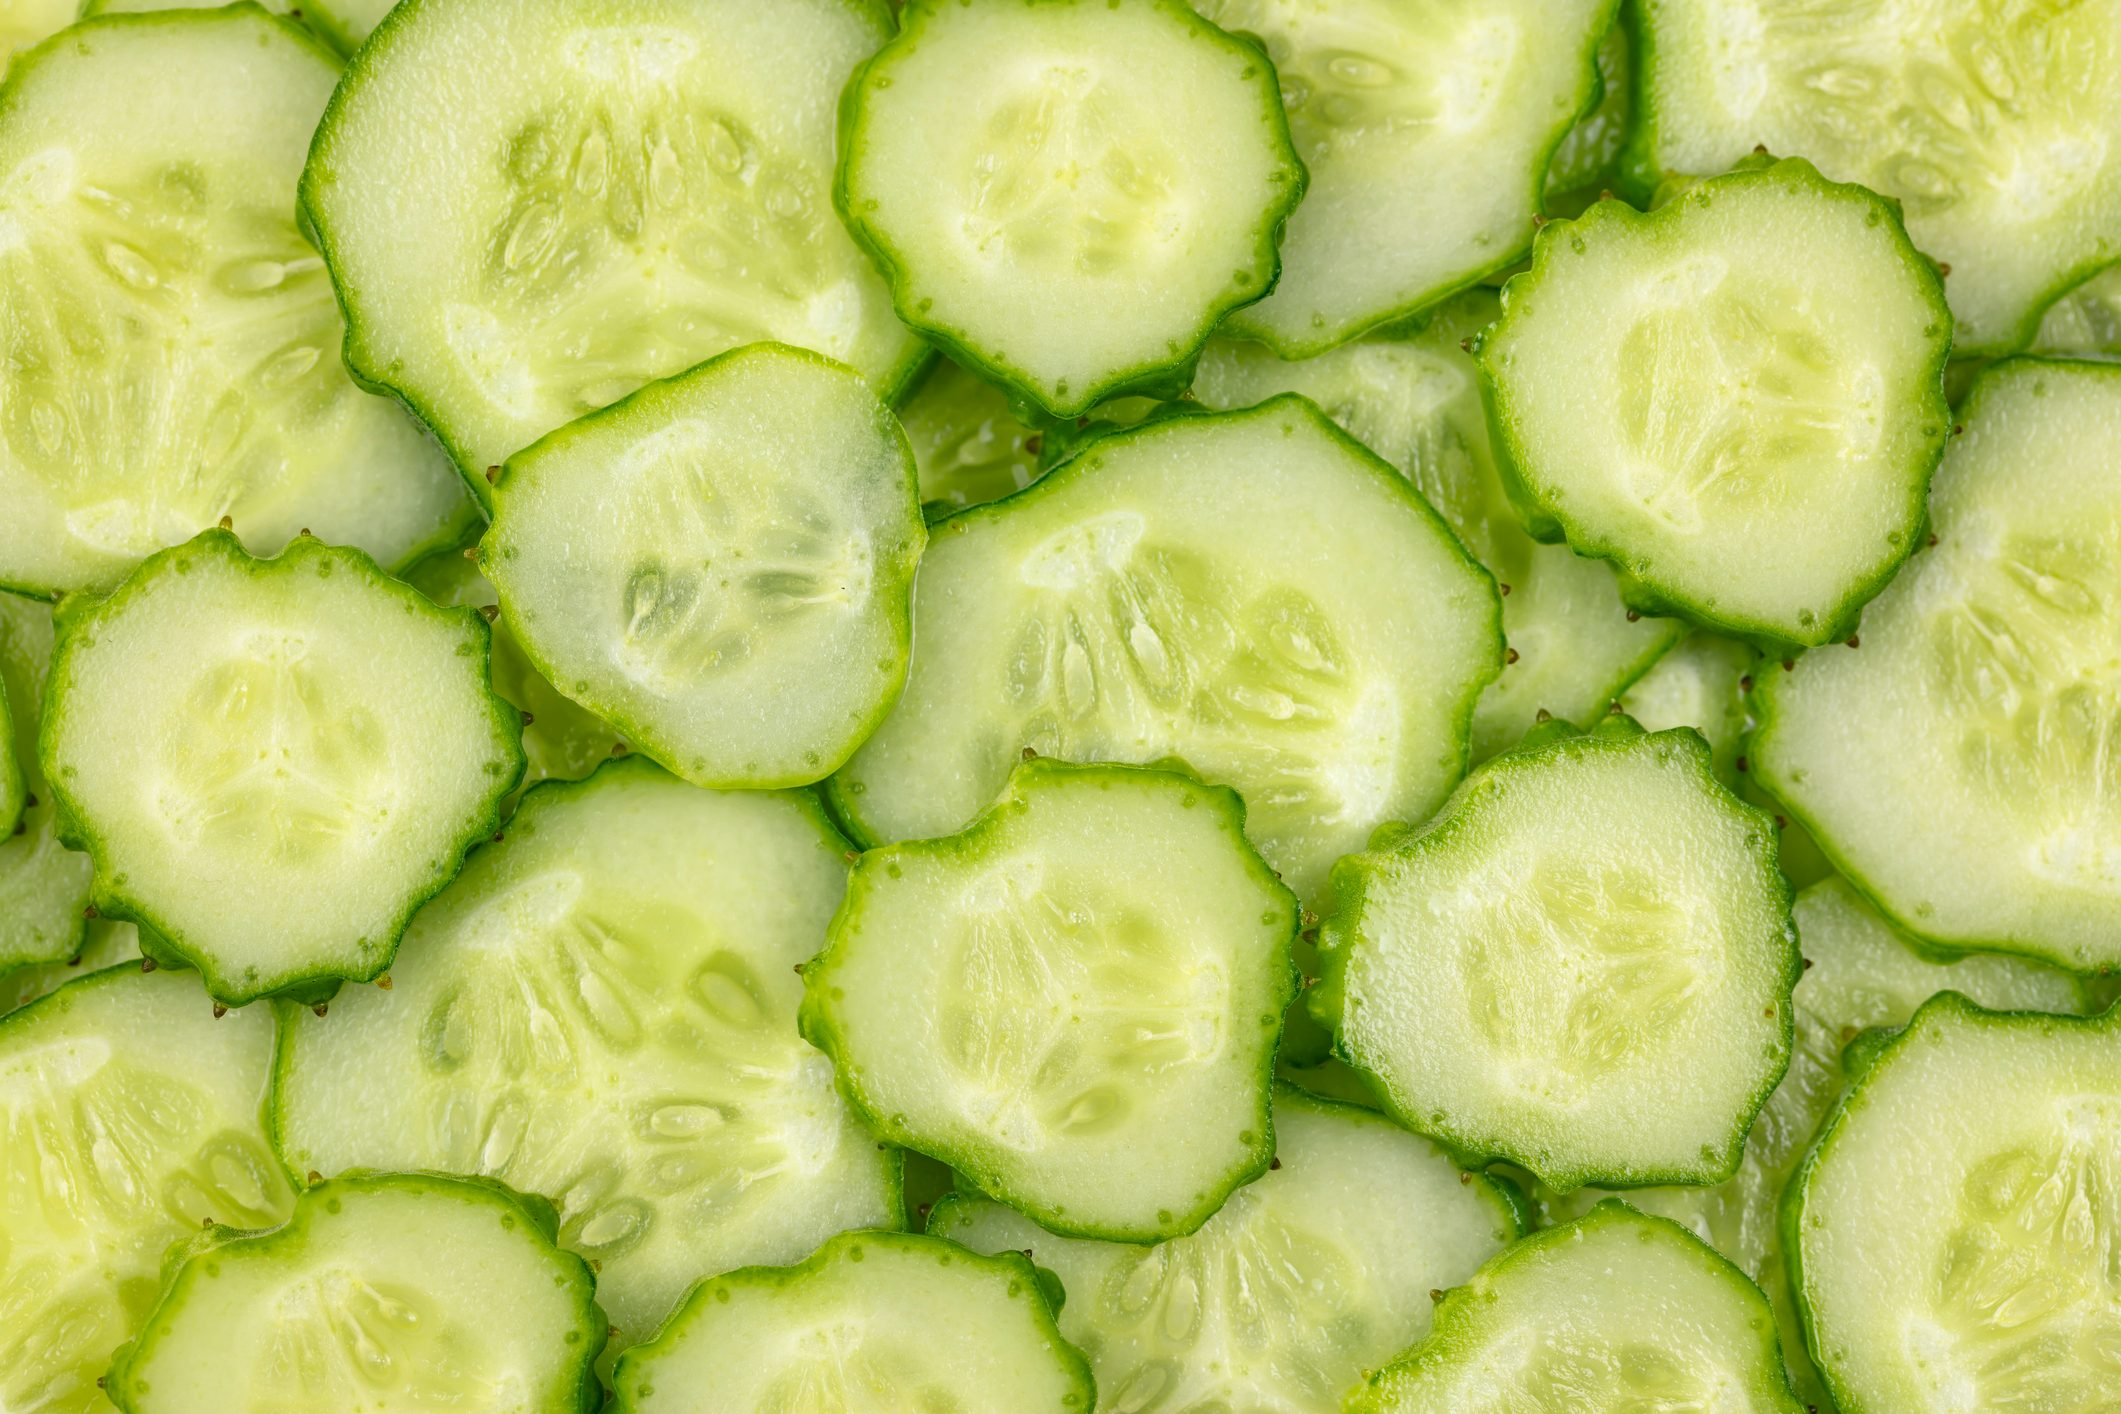 Ripe, sliced, fresh fruits, organic cucumber